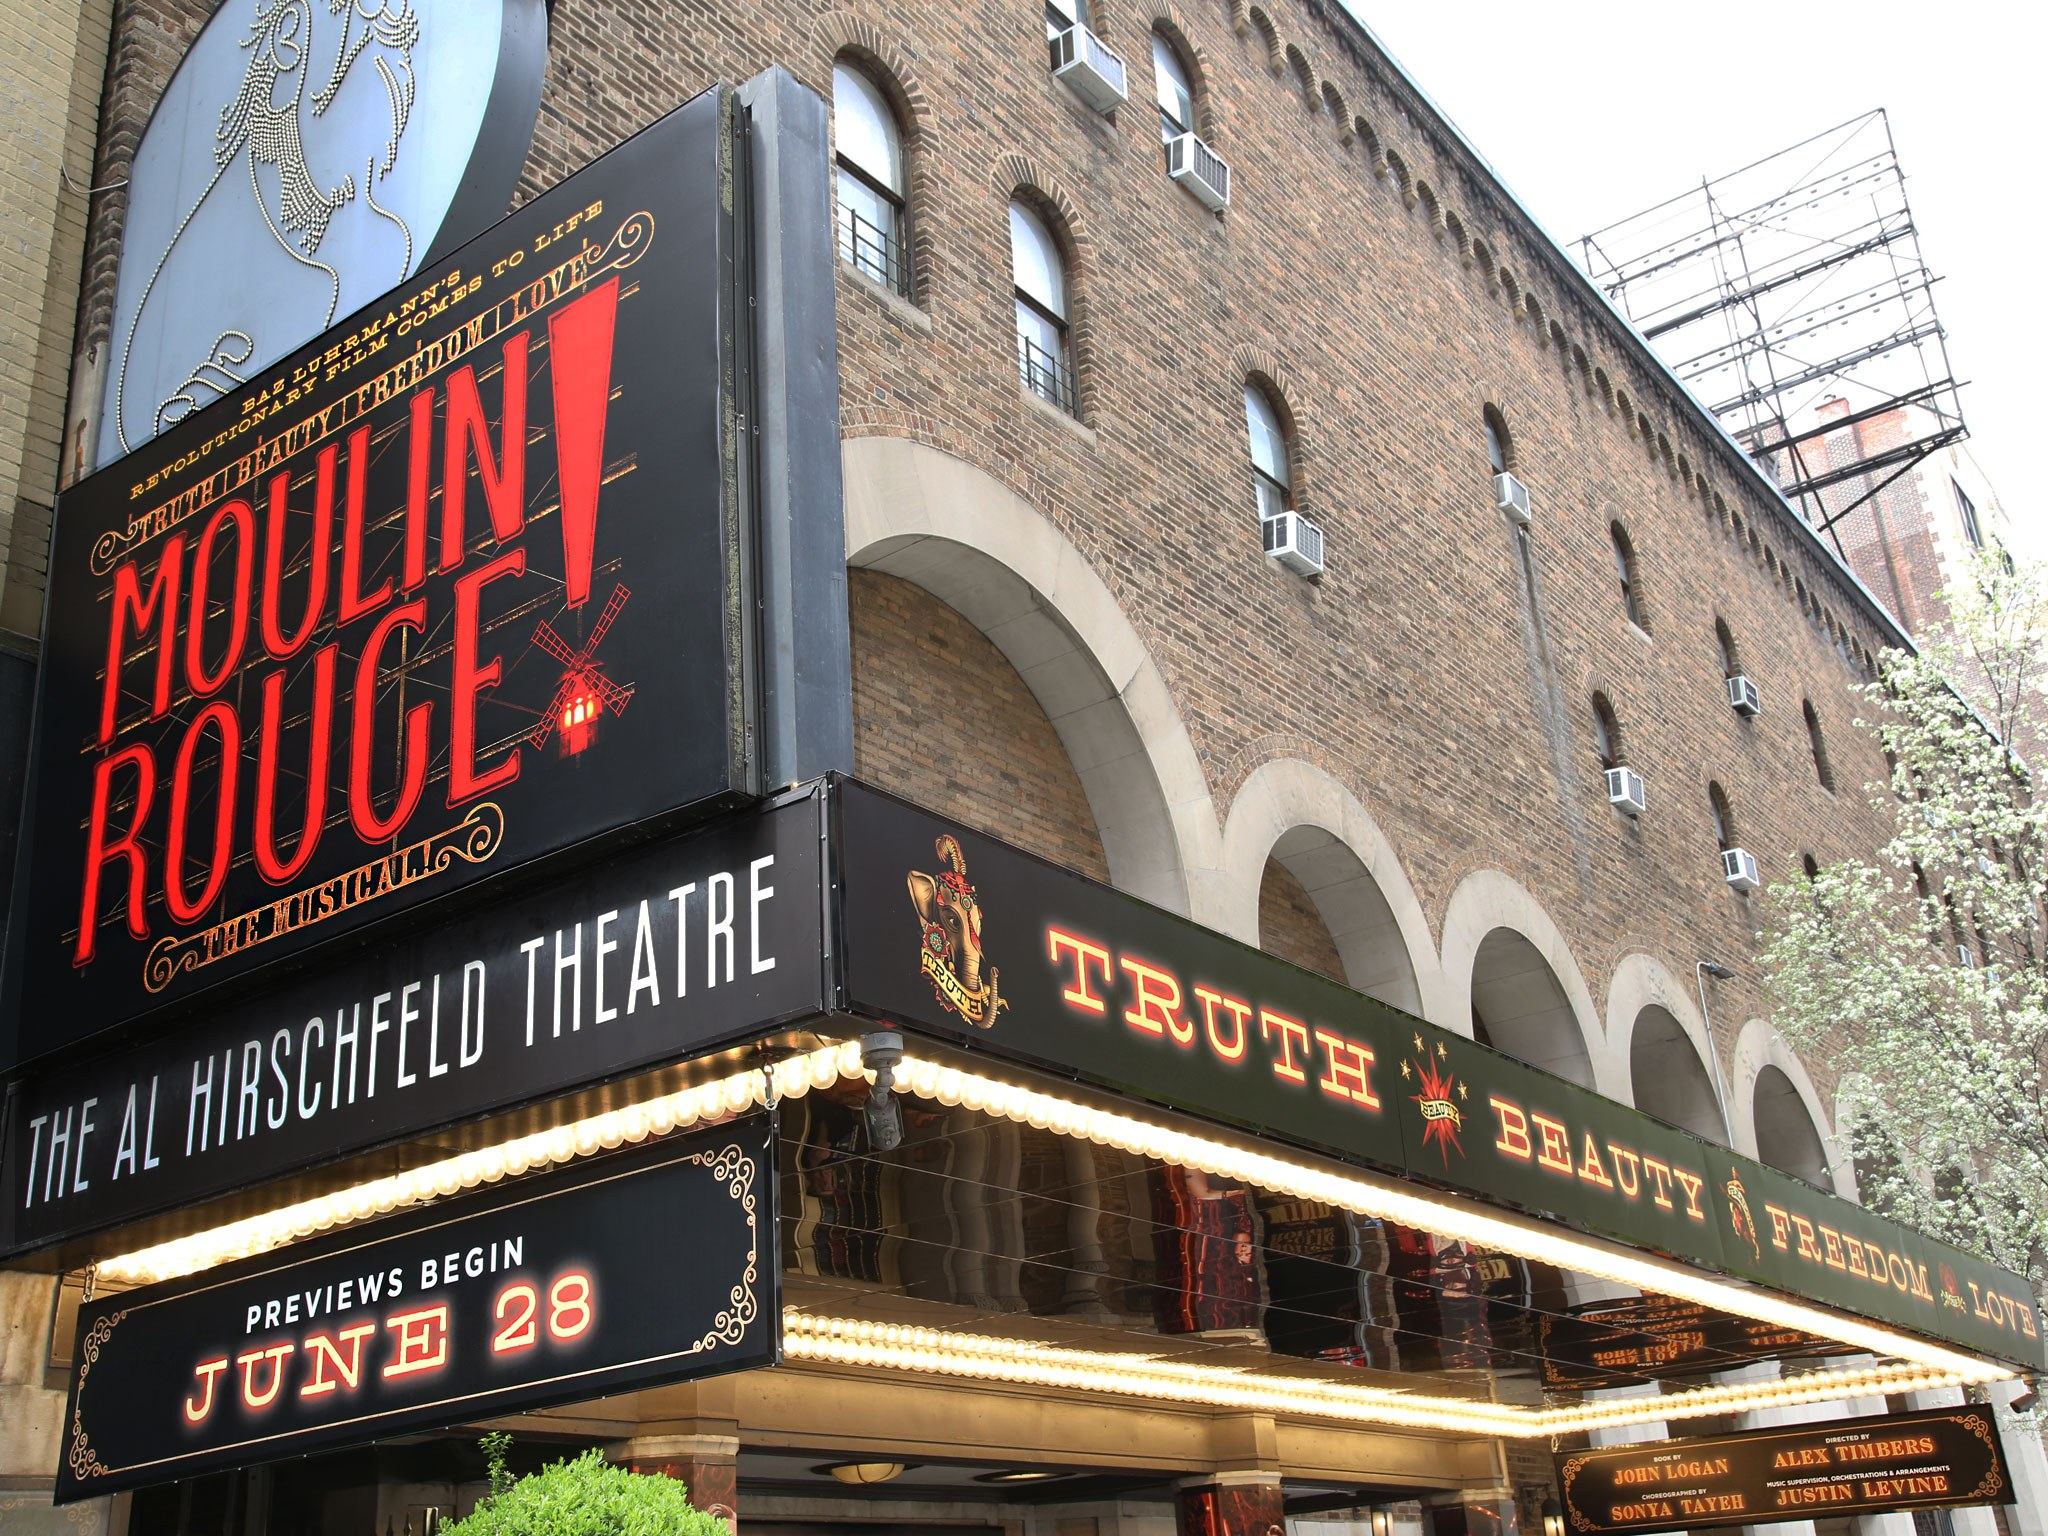 Moulin Rouge at the Al Hirschfeld Theatre